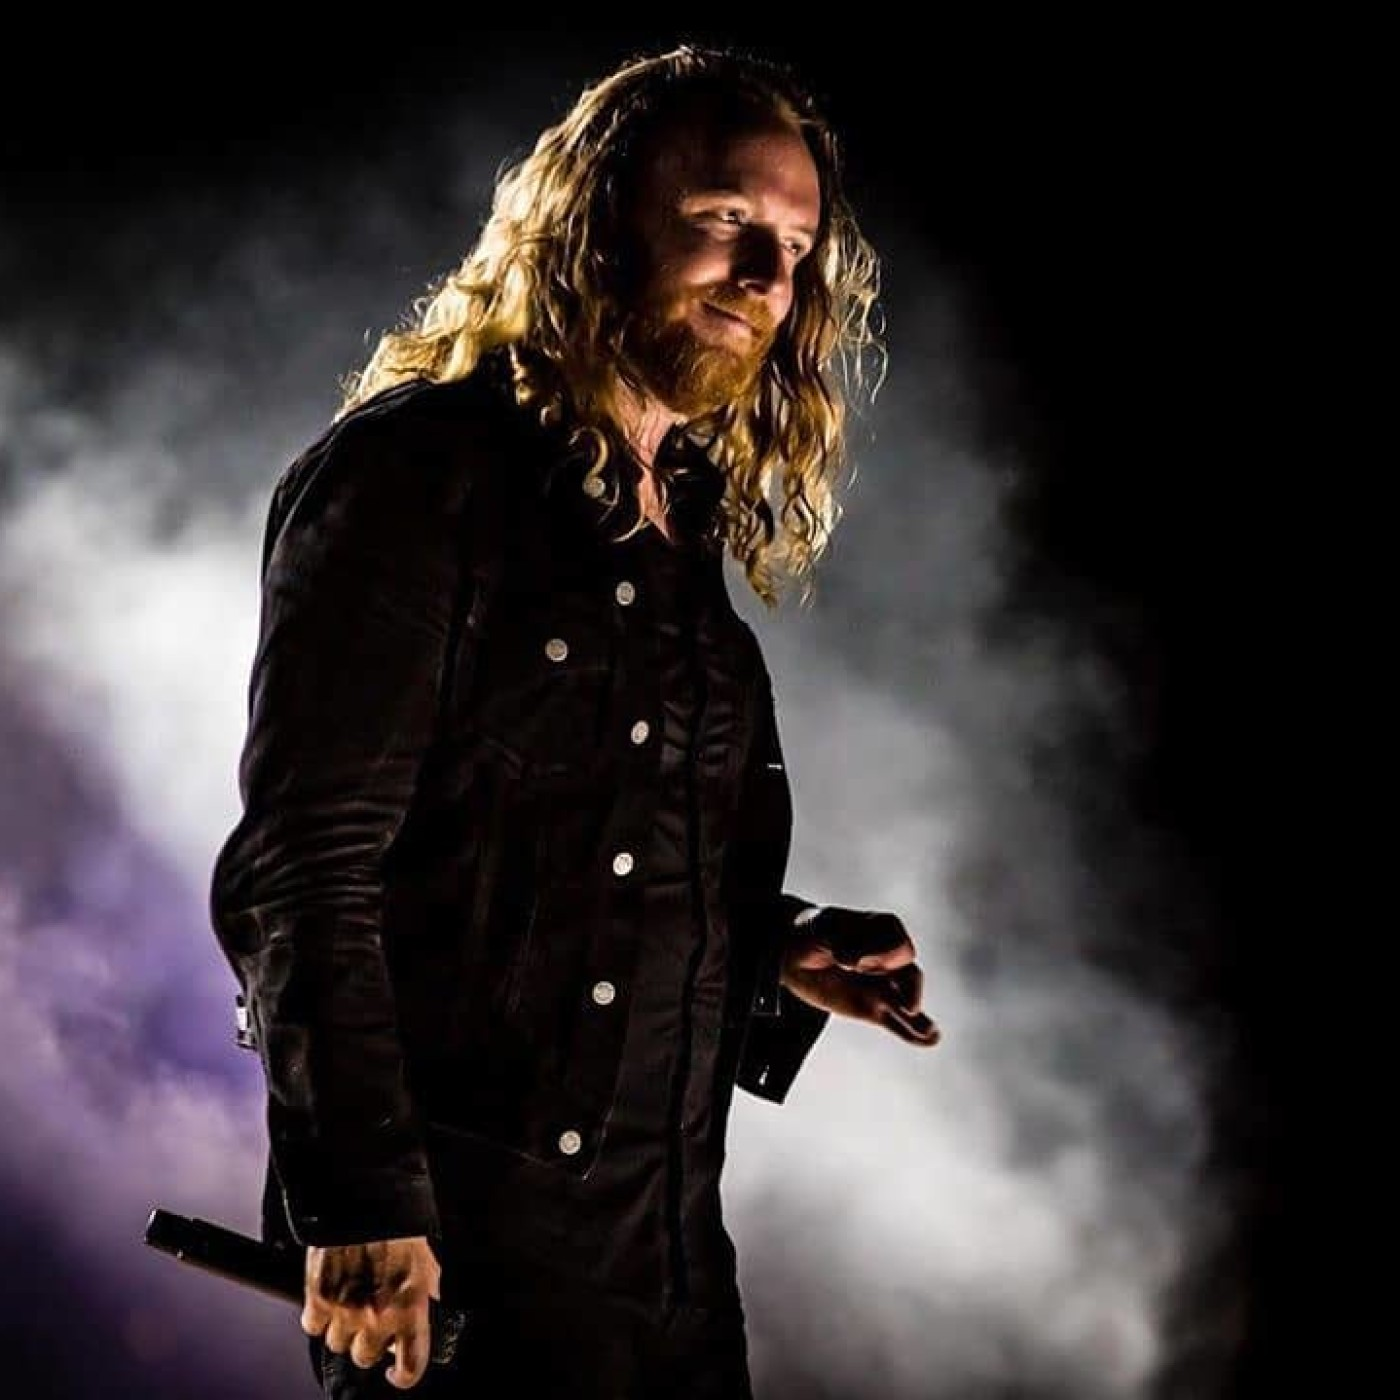 213Rock Podcast Harrag Melodica Interview with Mikael Stanne of Dark Tranquillity New album Moment Out Nov 20th  20 10 2020